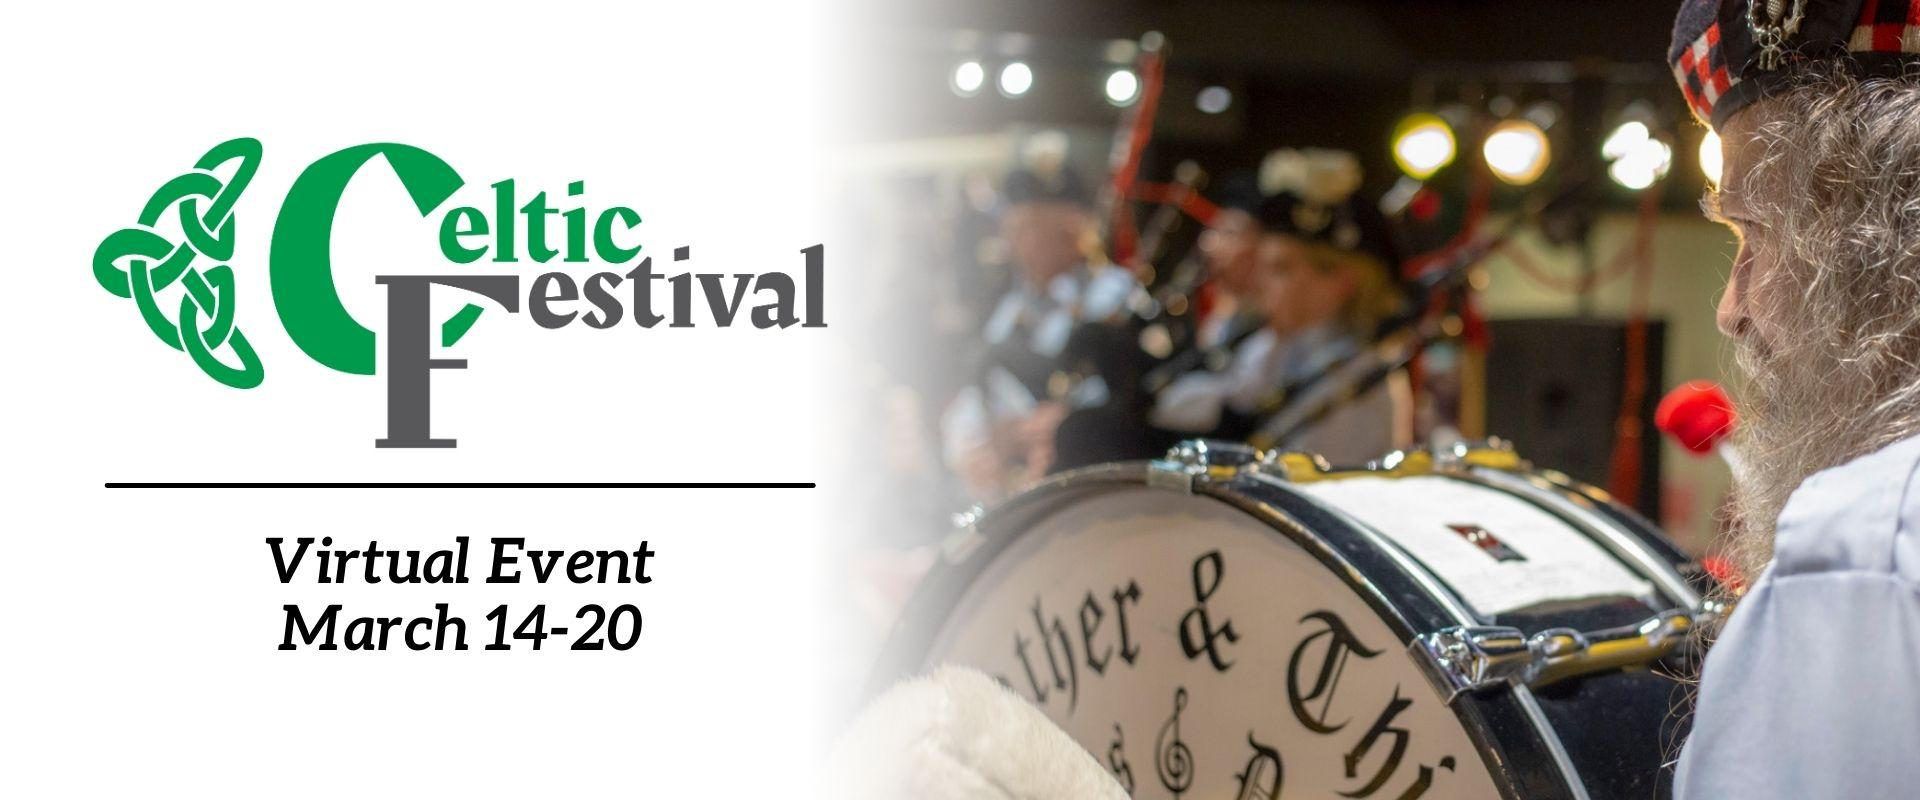 This image shows a graphic of virtual Celtic Festival.